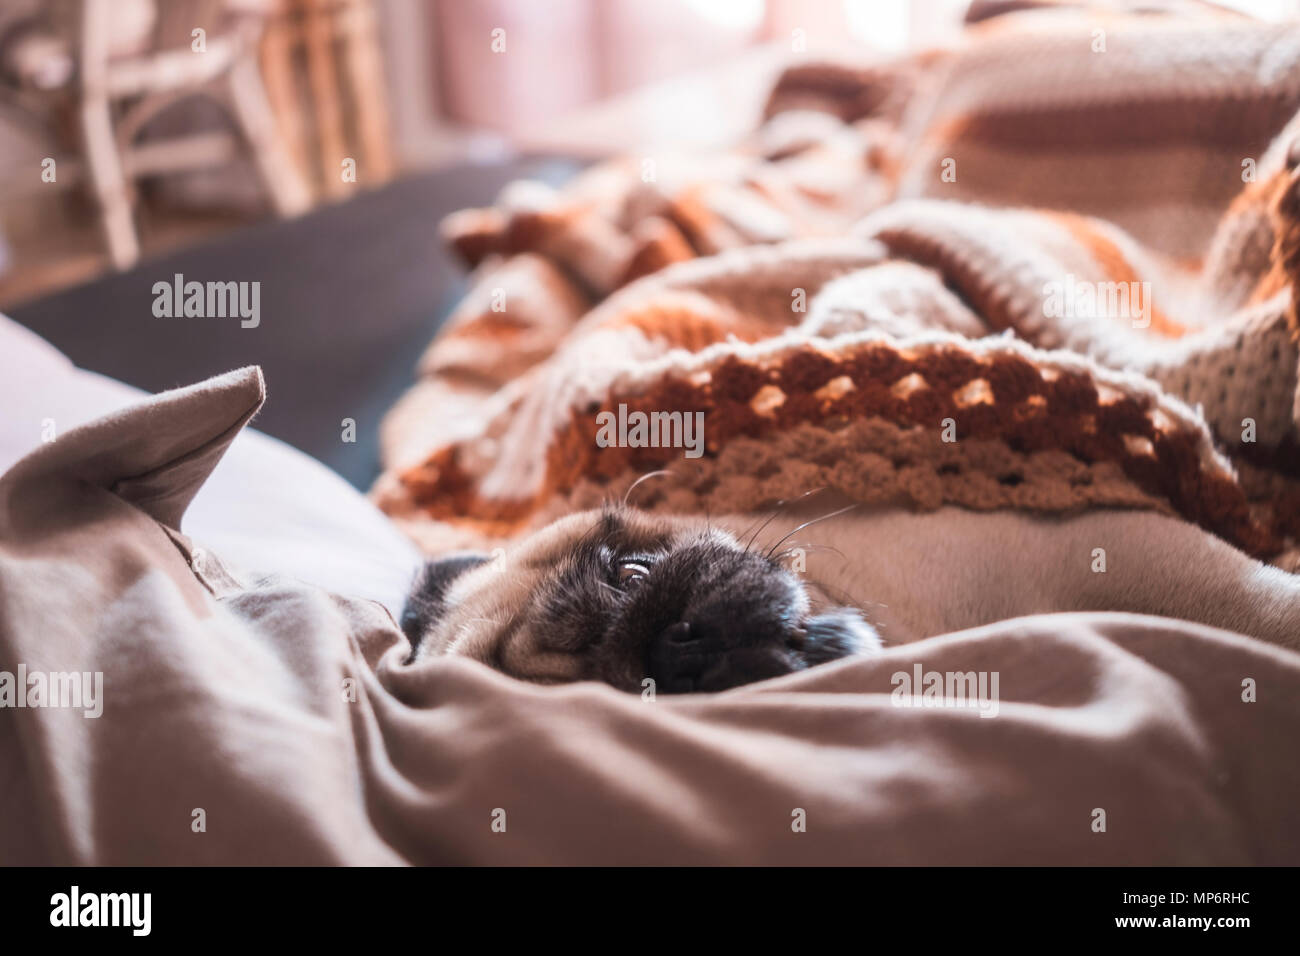 Funny nice pug dog sleep on the sofa at home with a morning backlight from a window. Lazy concept - Stock Image